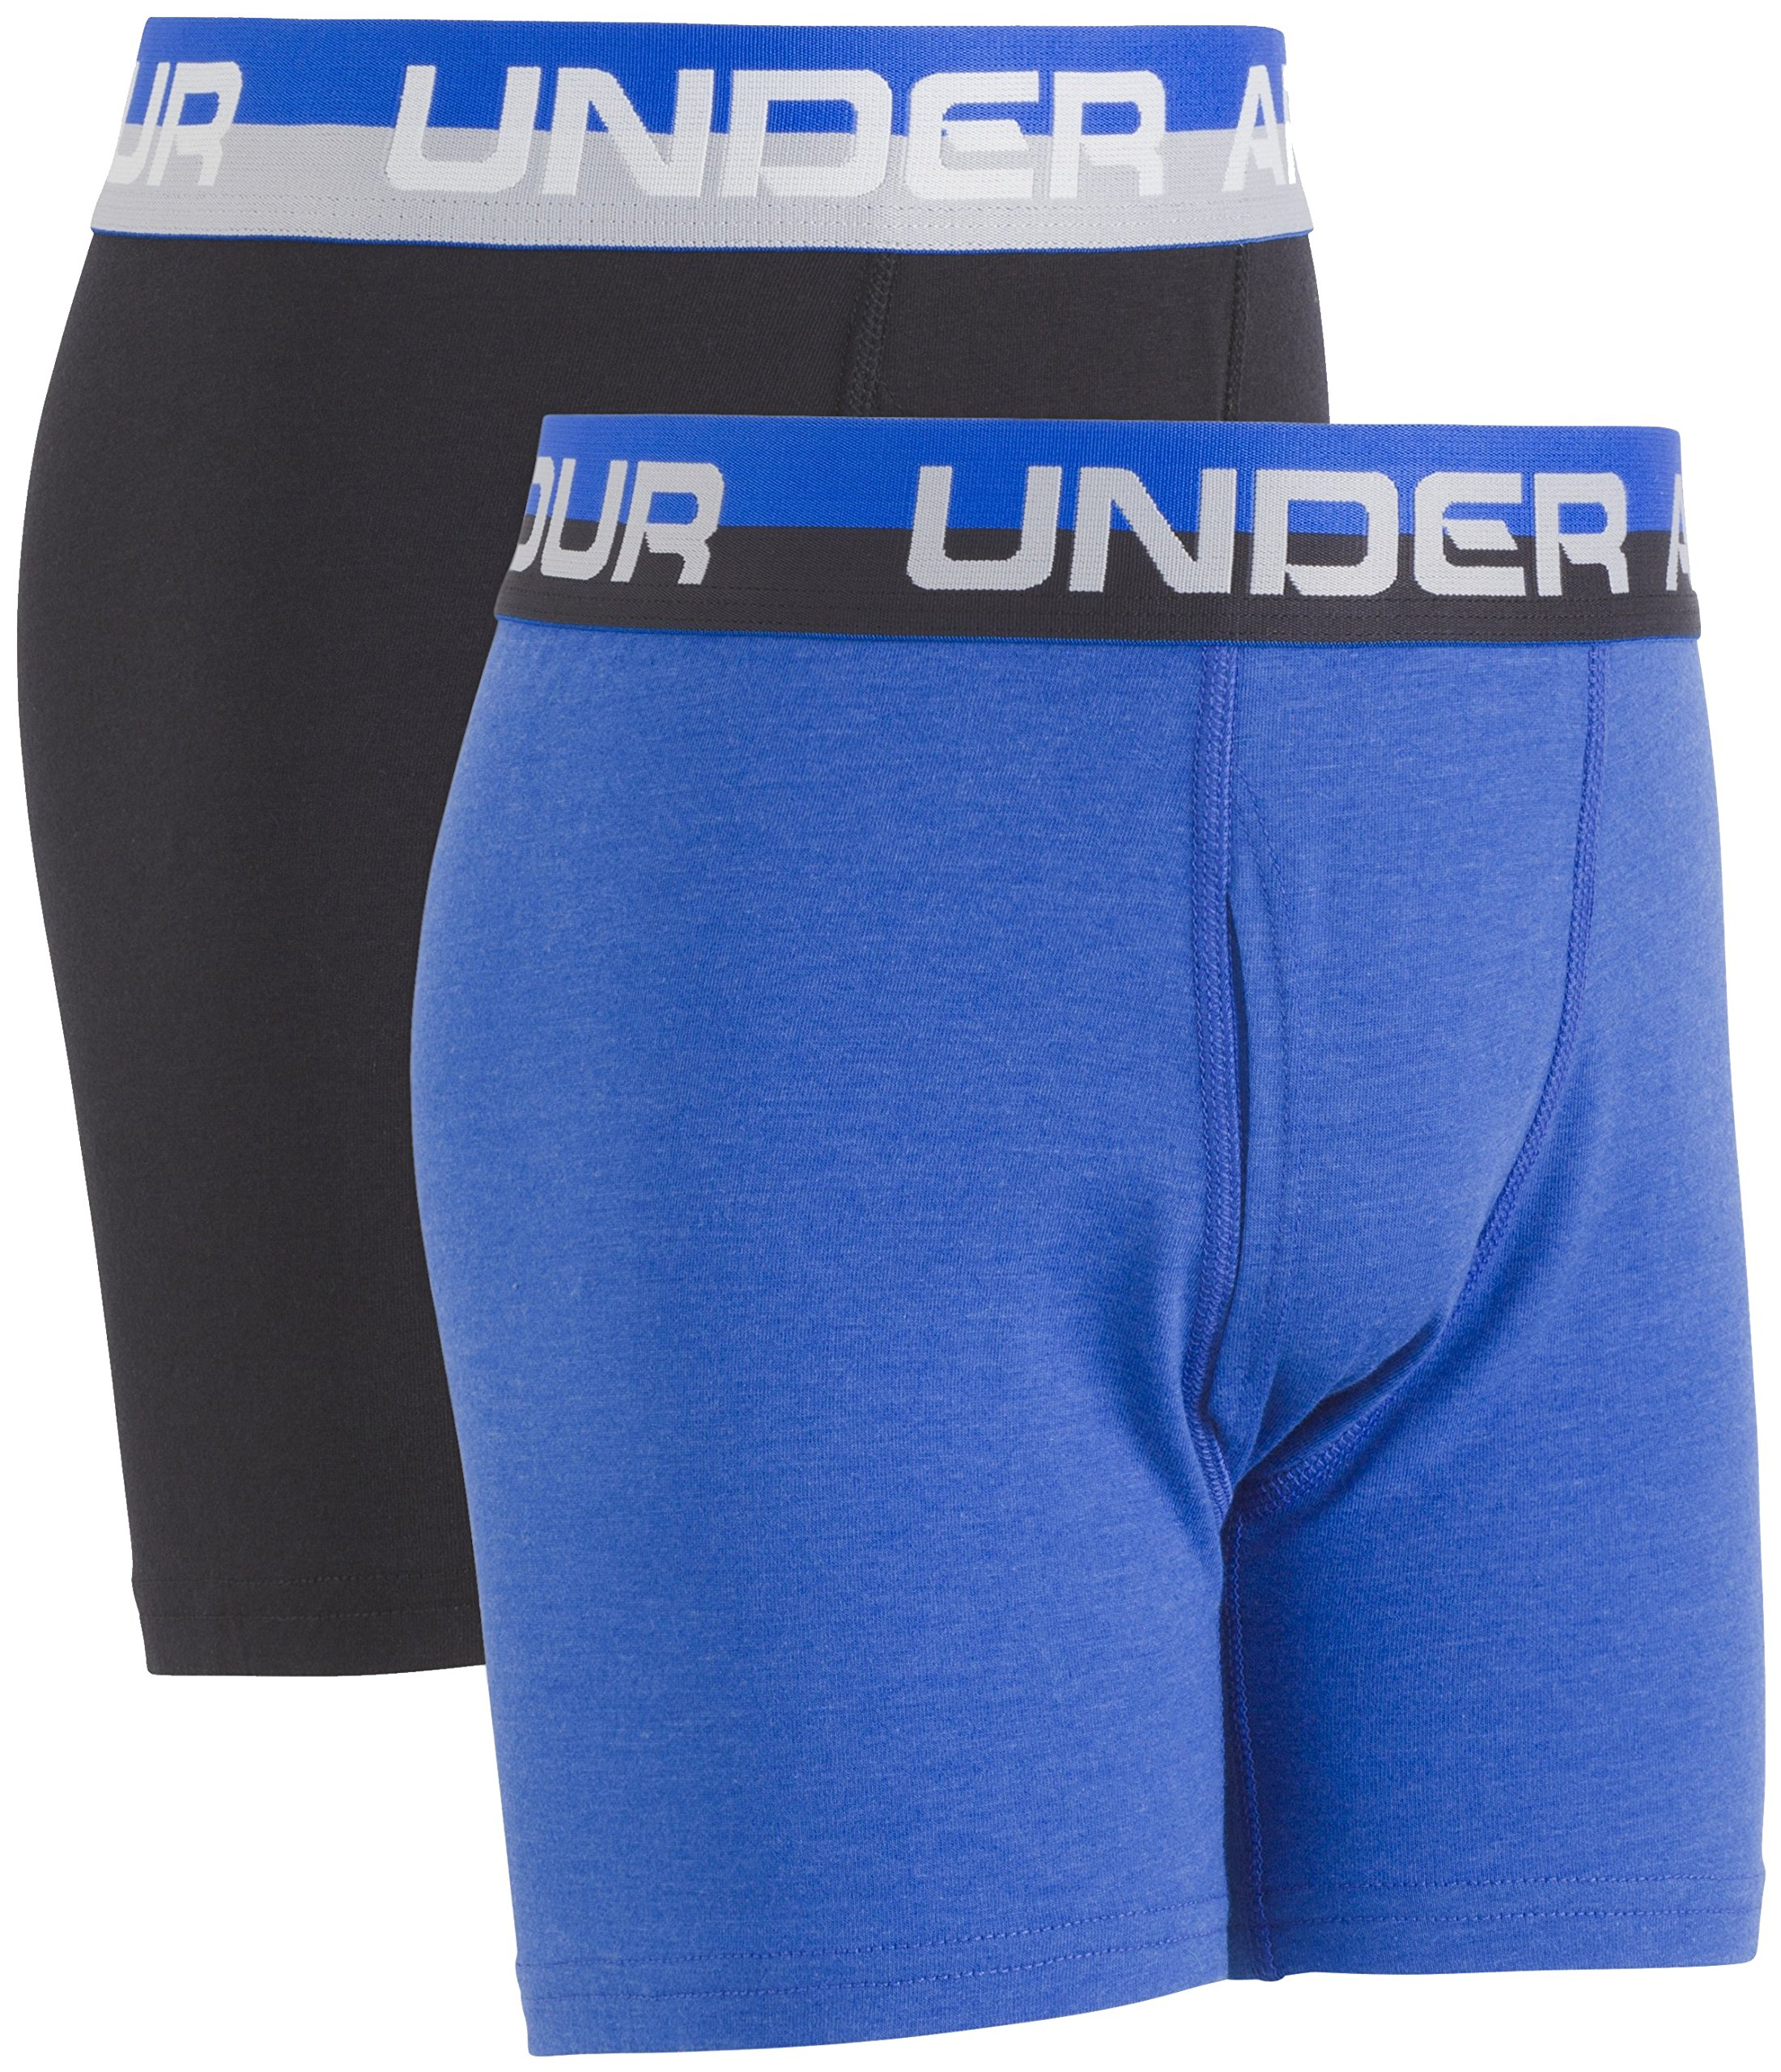 Under Armour Boys' Big Charged Cotton Stretch Boxer Jock, Ultra Blue/Black, YLG by Under Armour